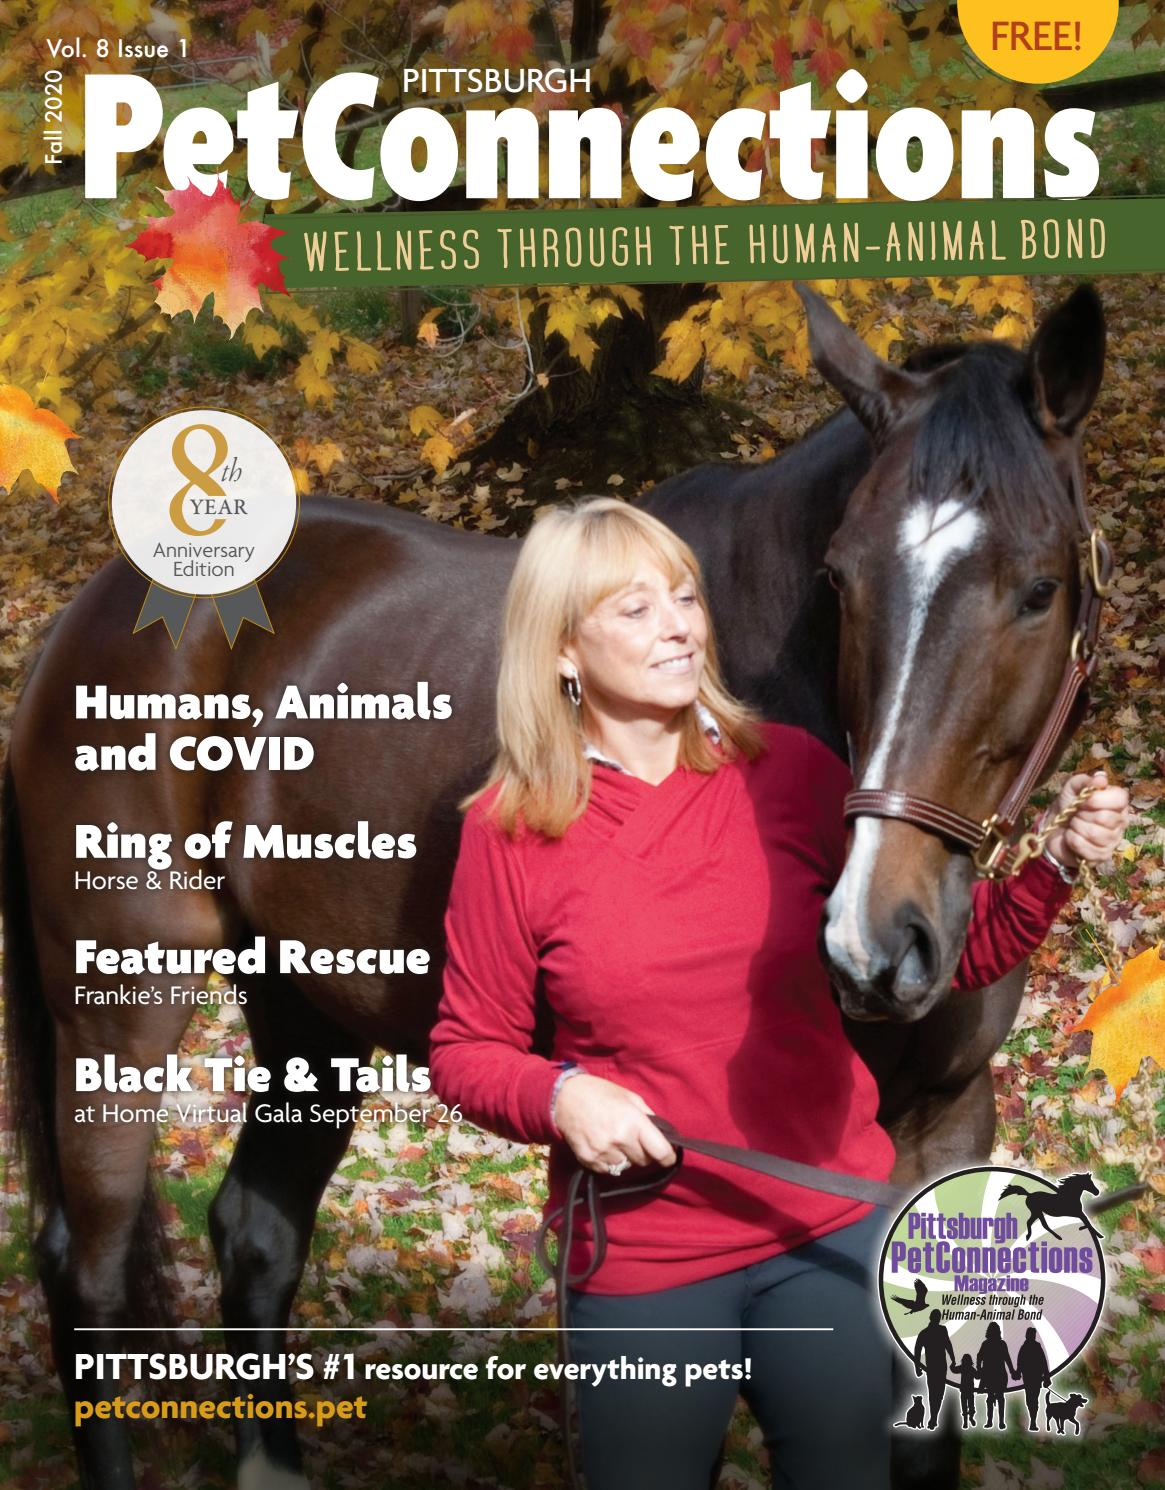 Skin Allergies Mount Nebo Arkansas Christmas 2020 PETCONNECTIONS MAGAZINE FALL 2020 by Pittsburgh PetConnections